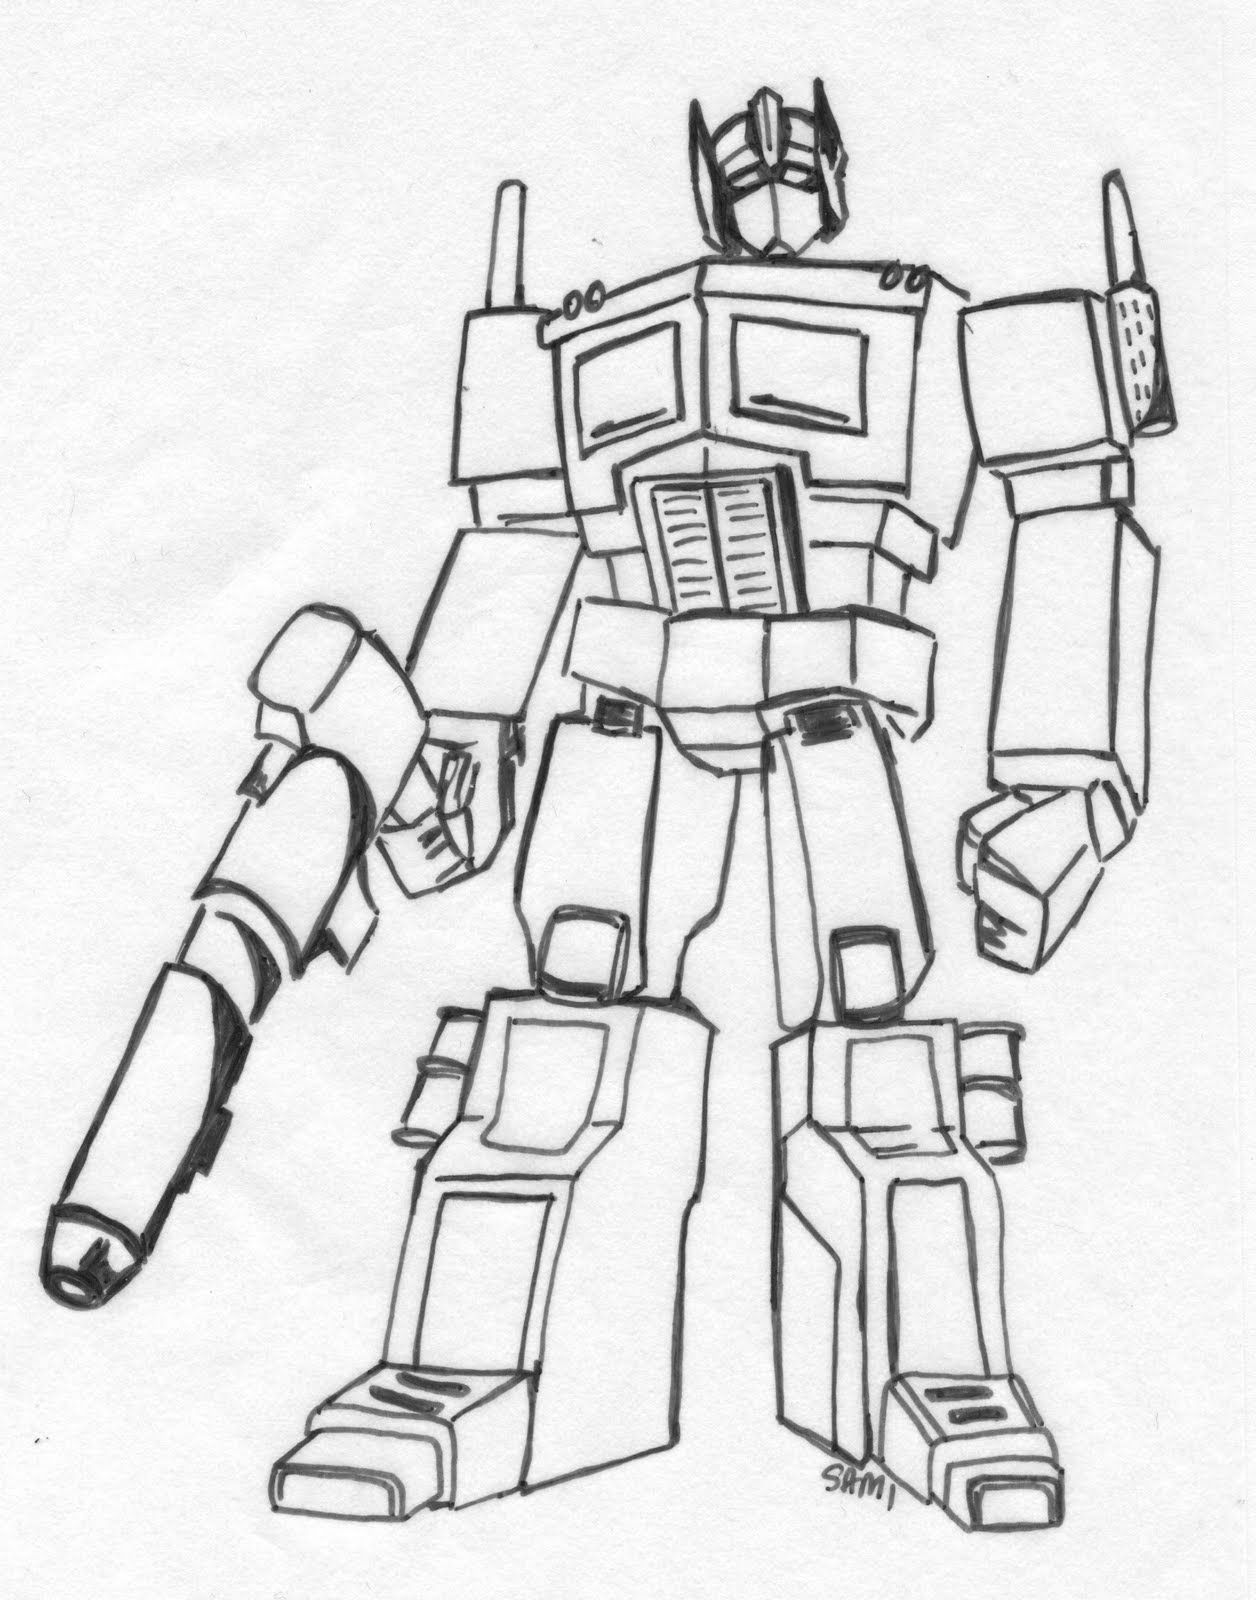 optimus prime animated coloring pages | Pin by Shilah LaMere on projects | Transformers coloring ...